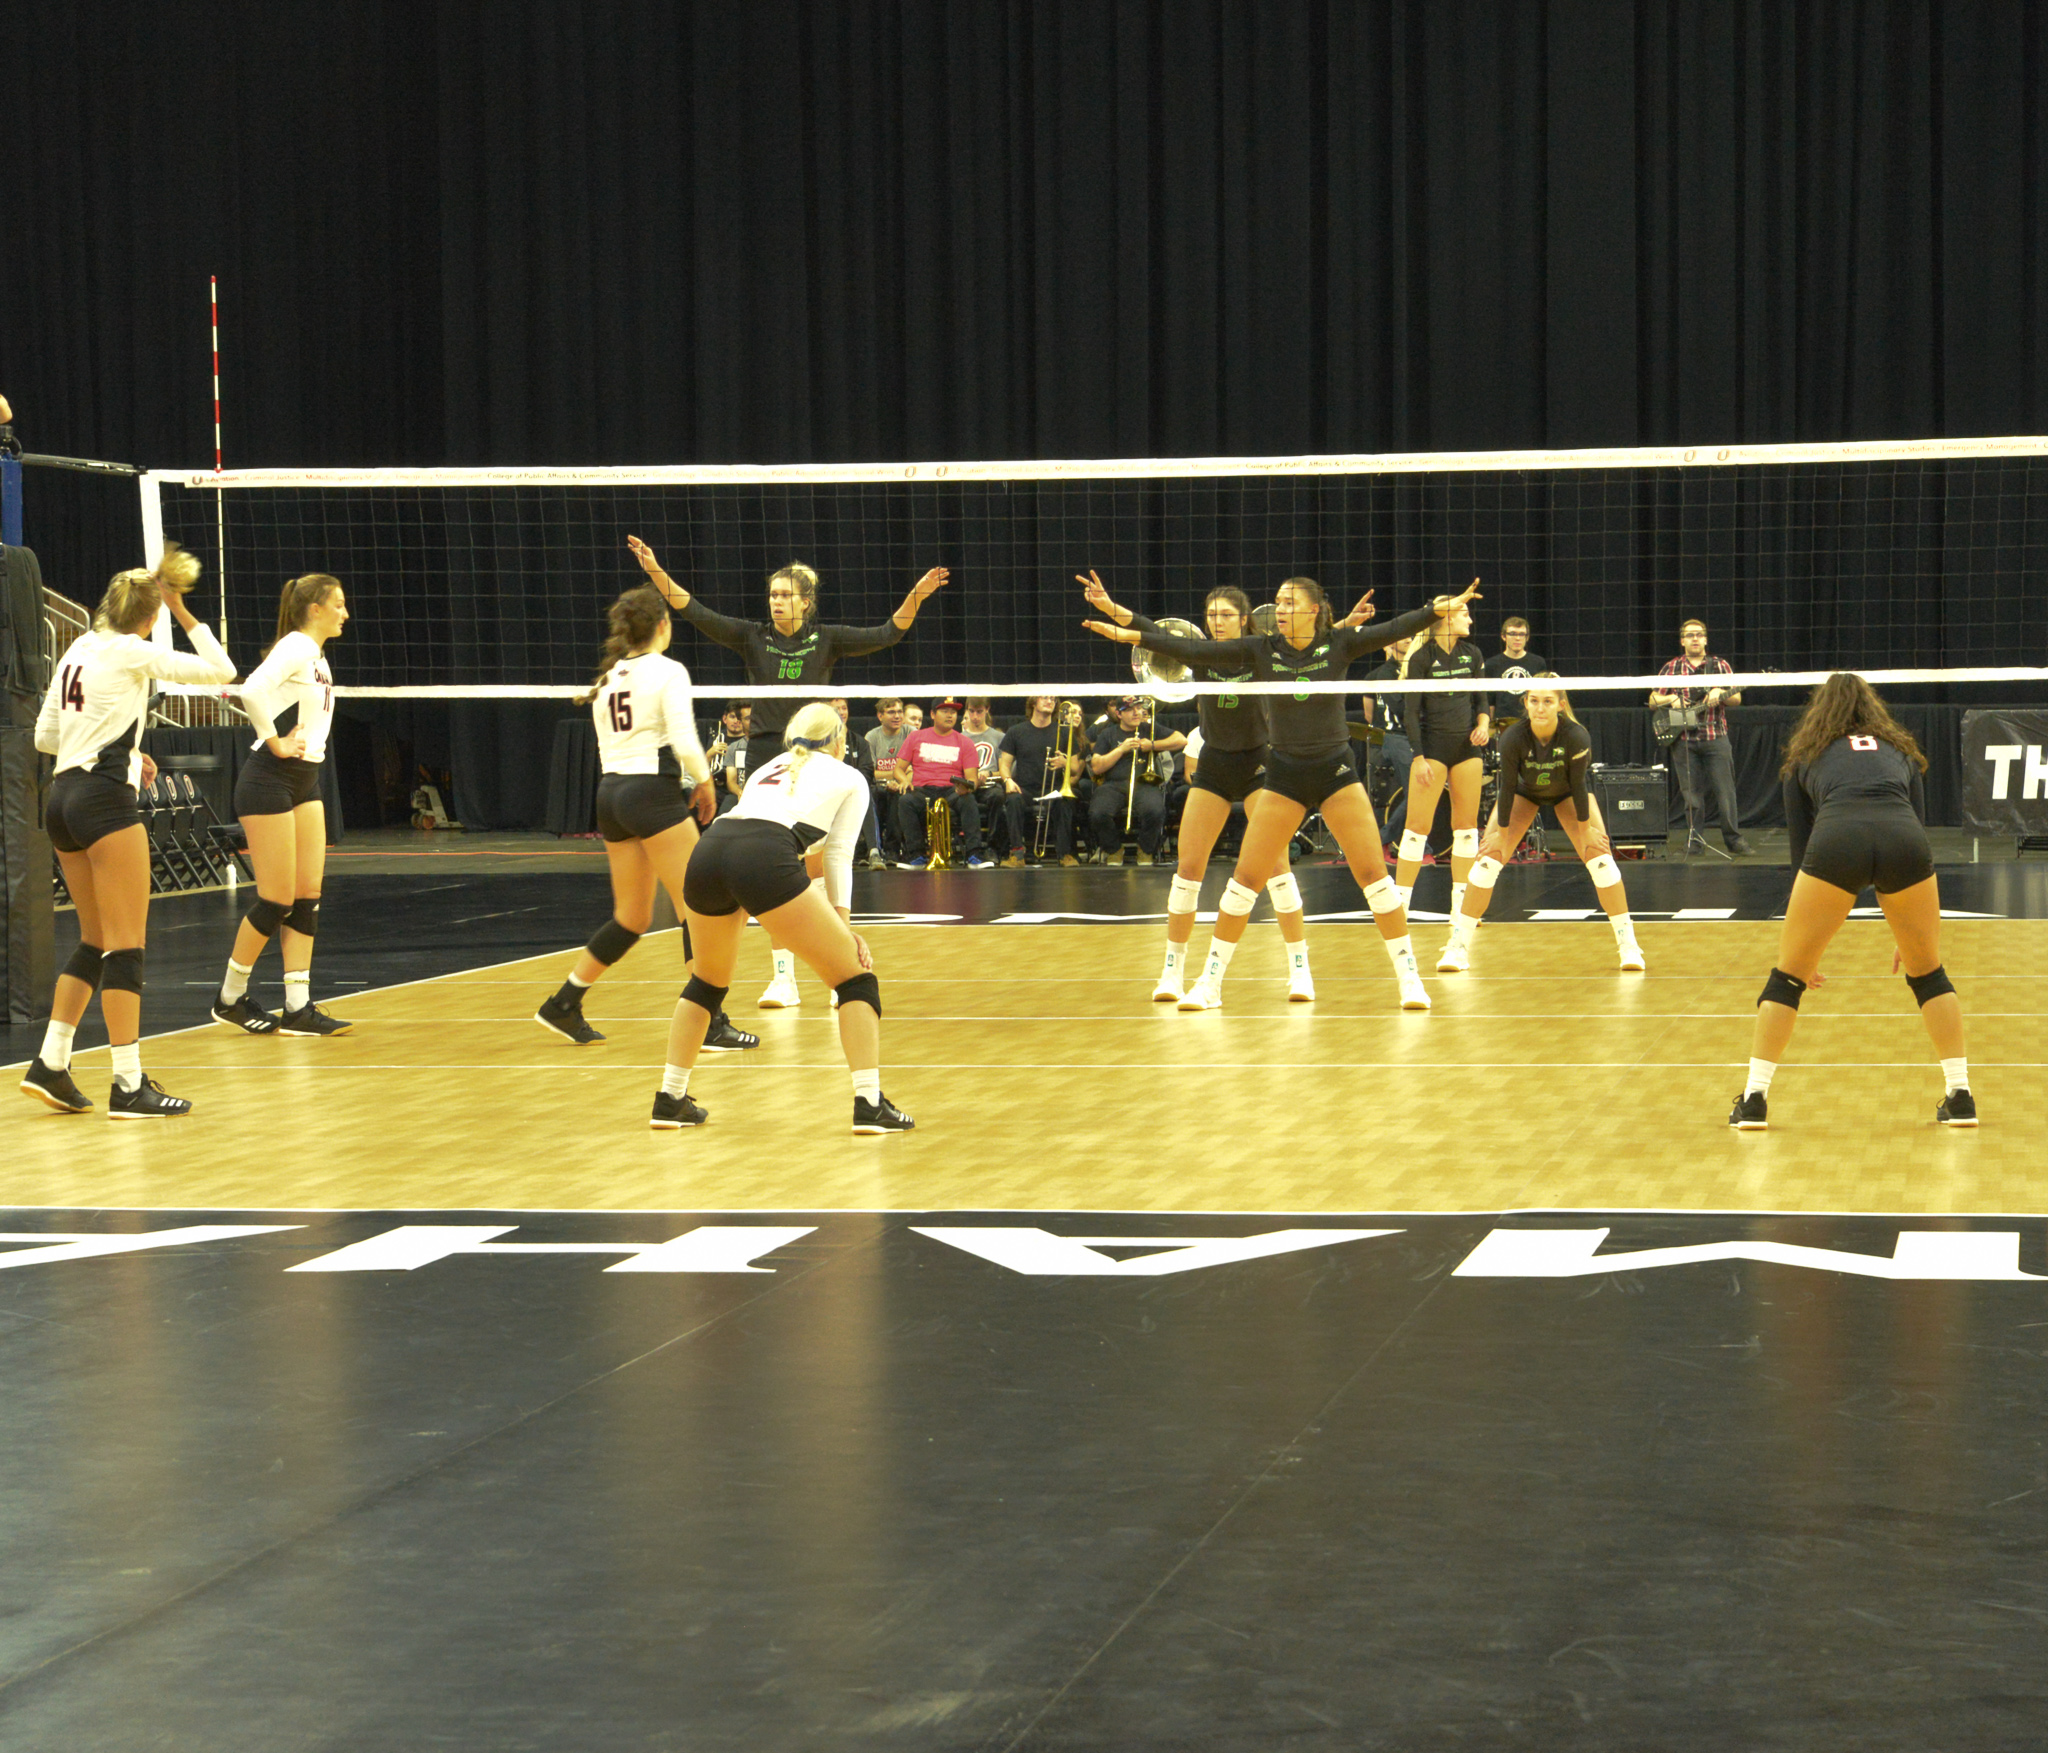 Volleyball players on the court